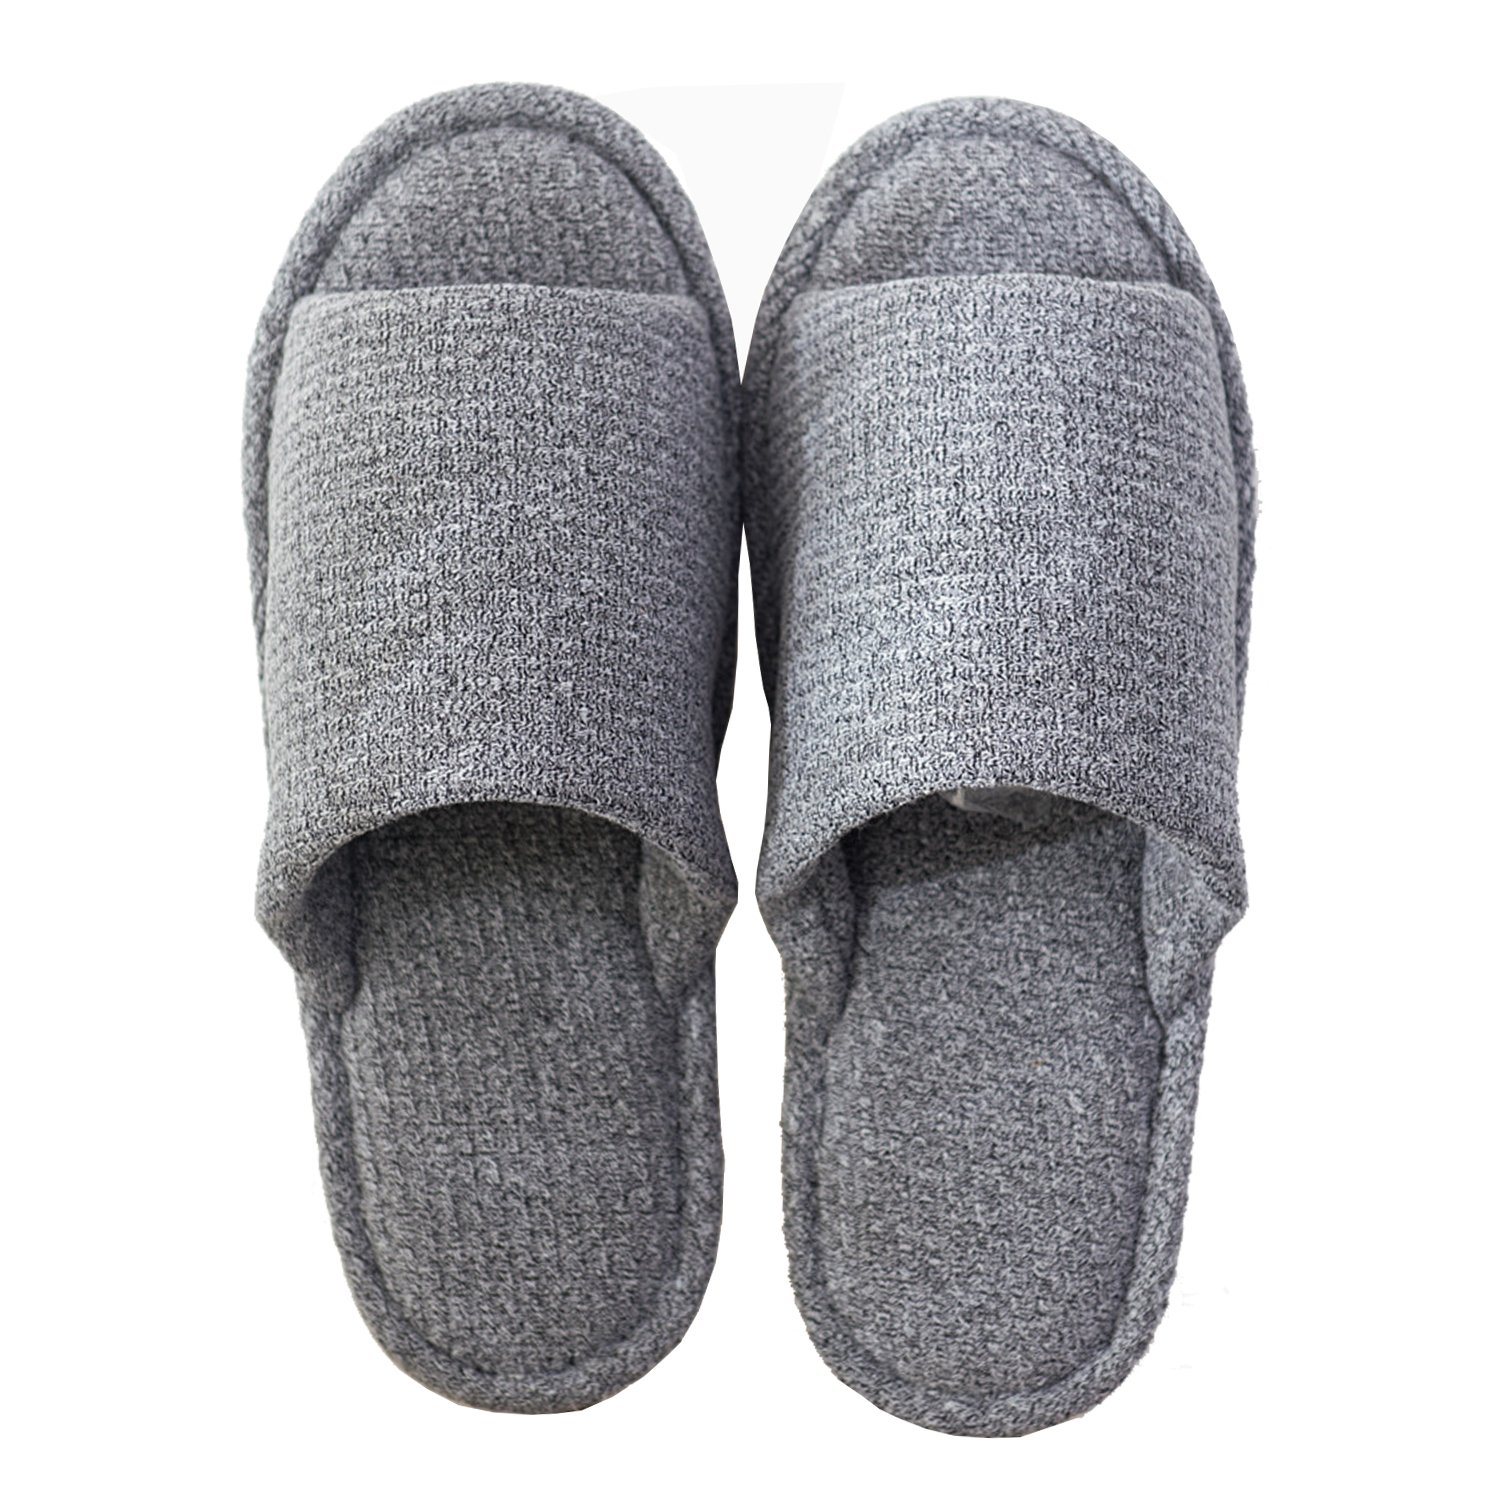 xsby Home Slippers for Men, House Slippers Non-Slip Open Toe Couple Sandals Knitted Cotton Mules Shoes Dark Grey-A 44-45